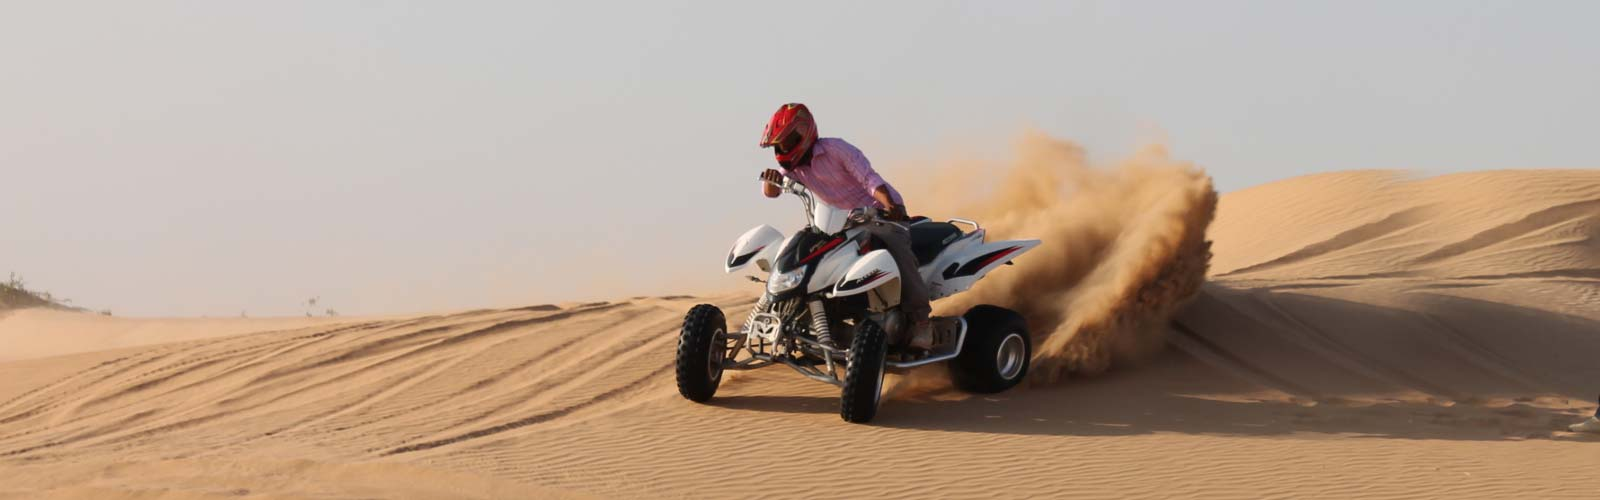 Quad Bike Riding in the Desert